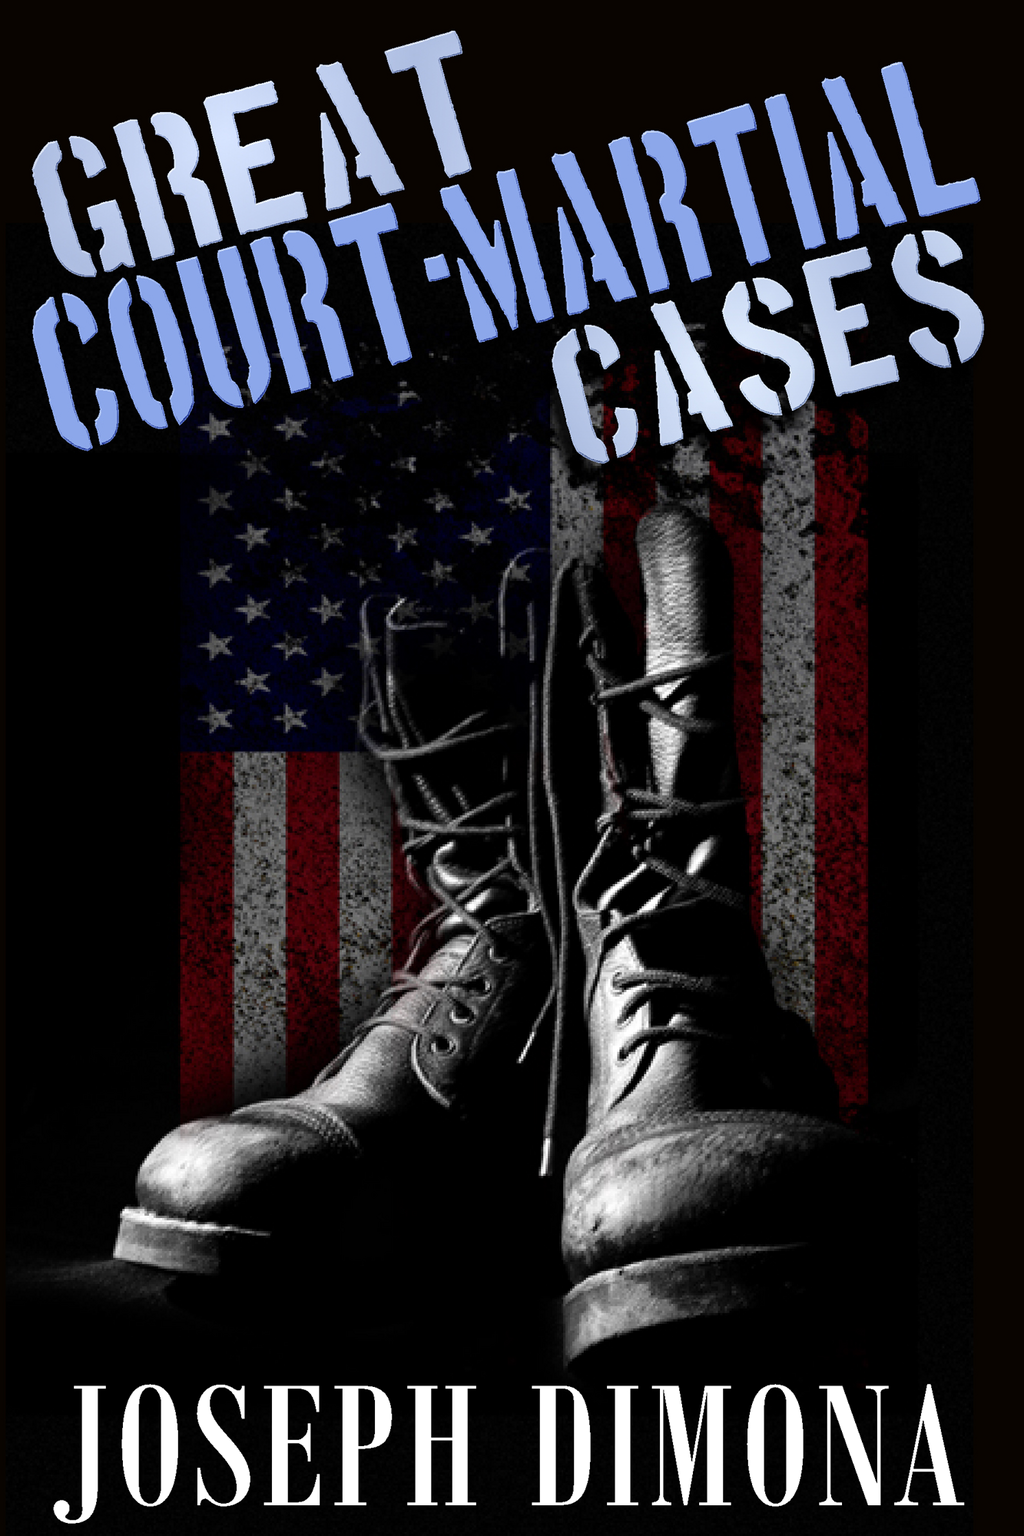 Great Court Martial Cases